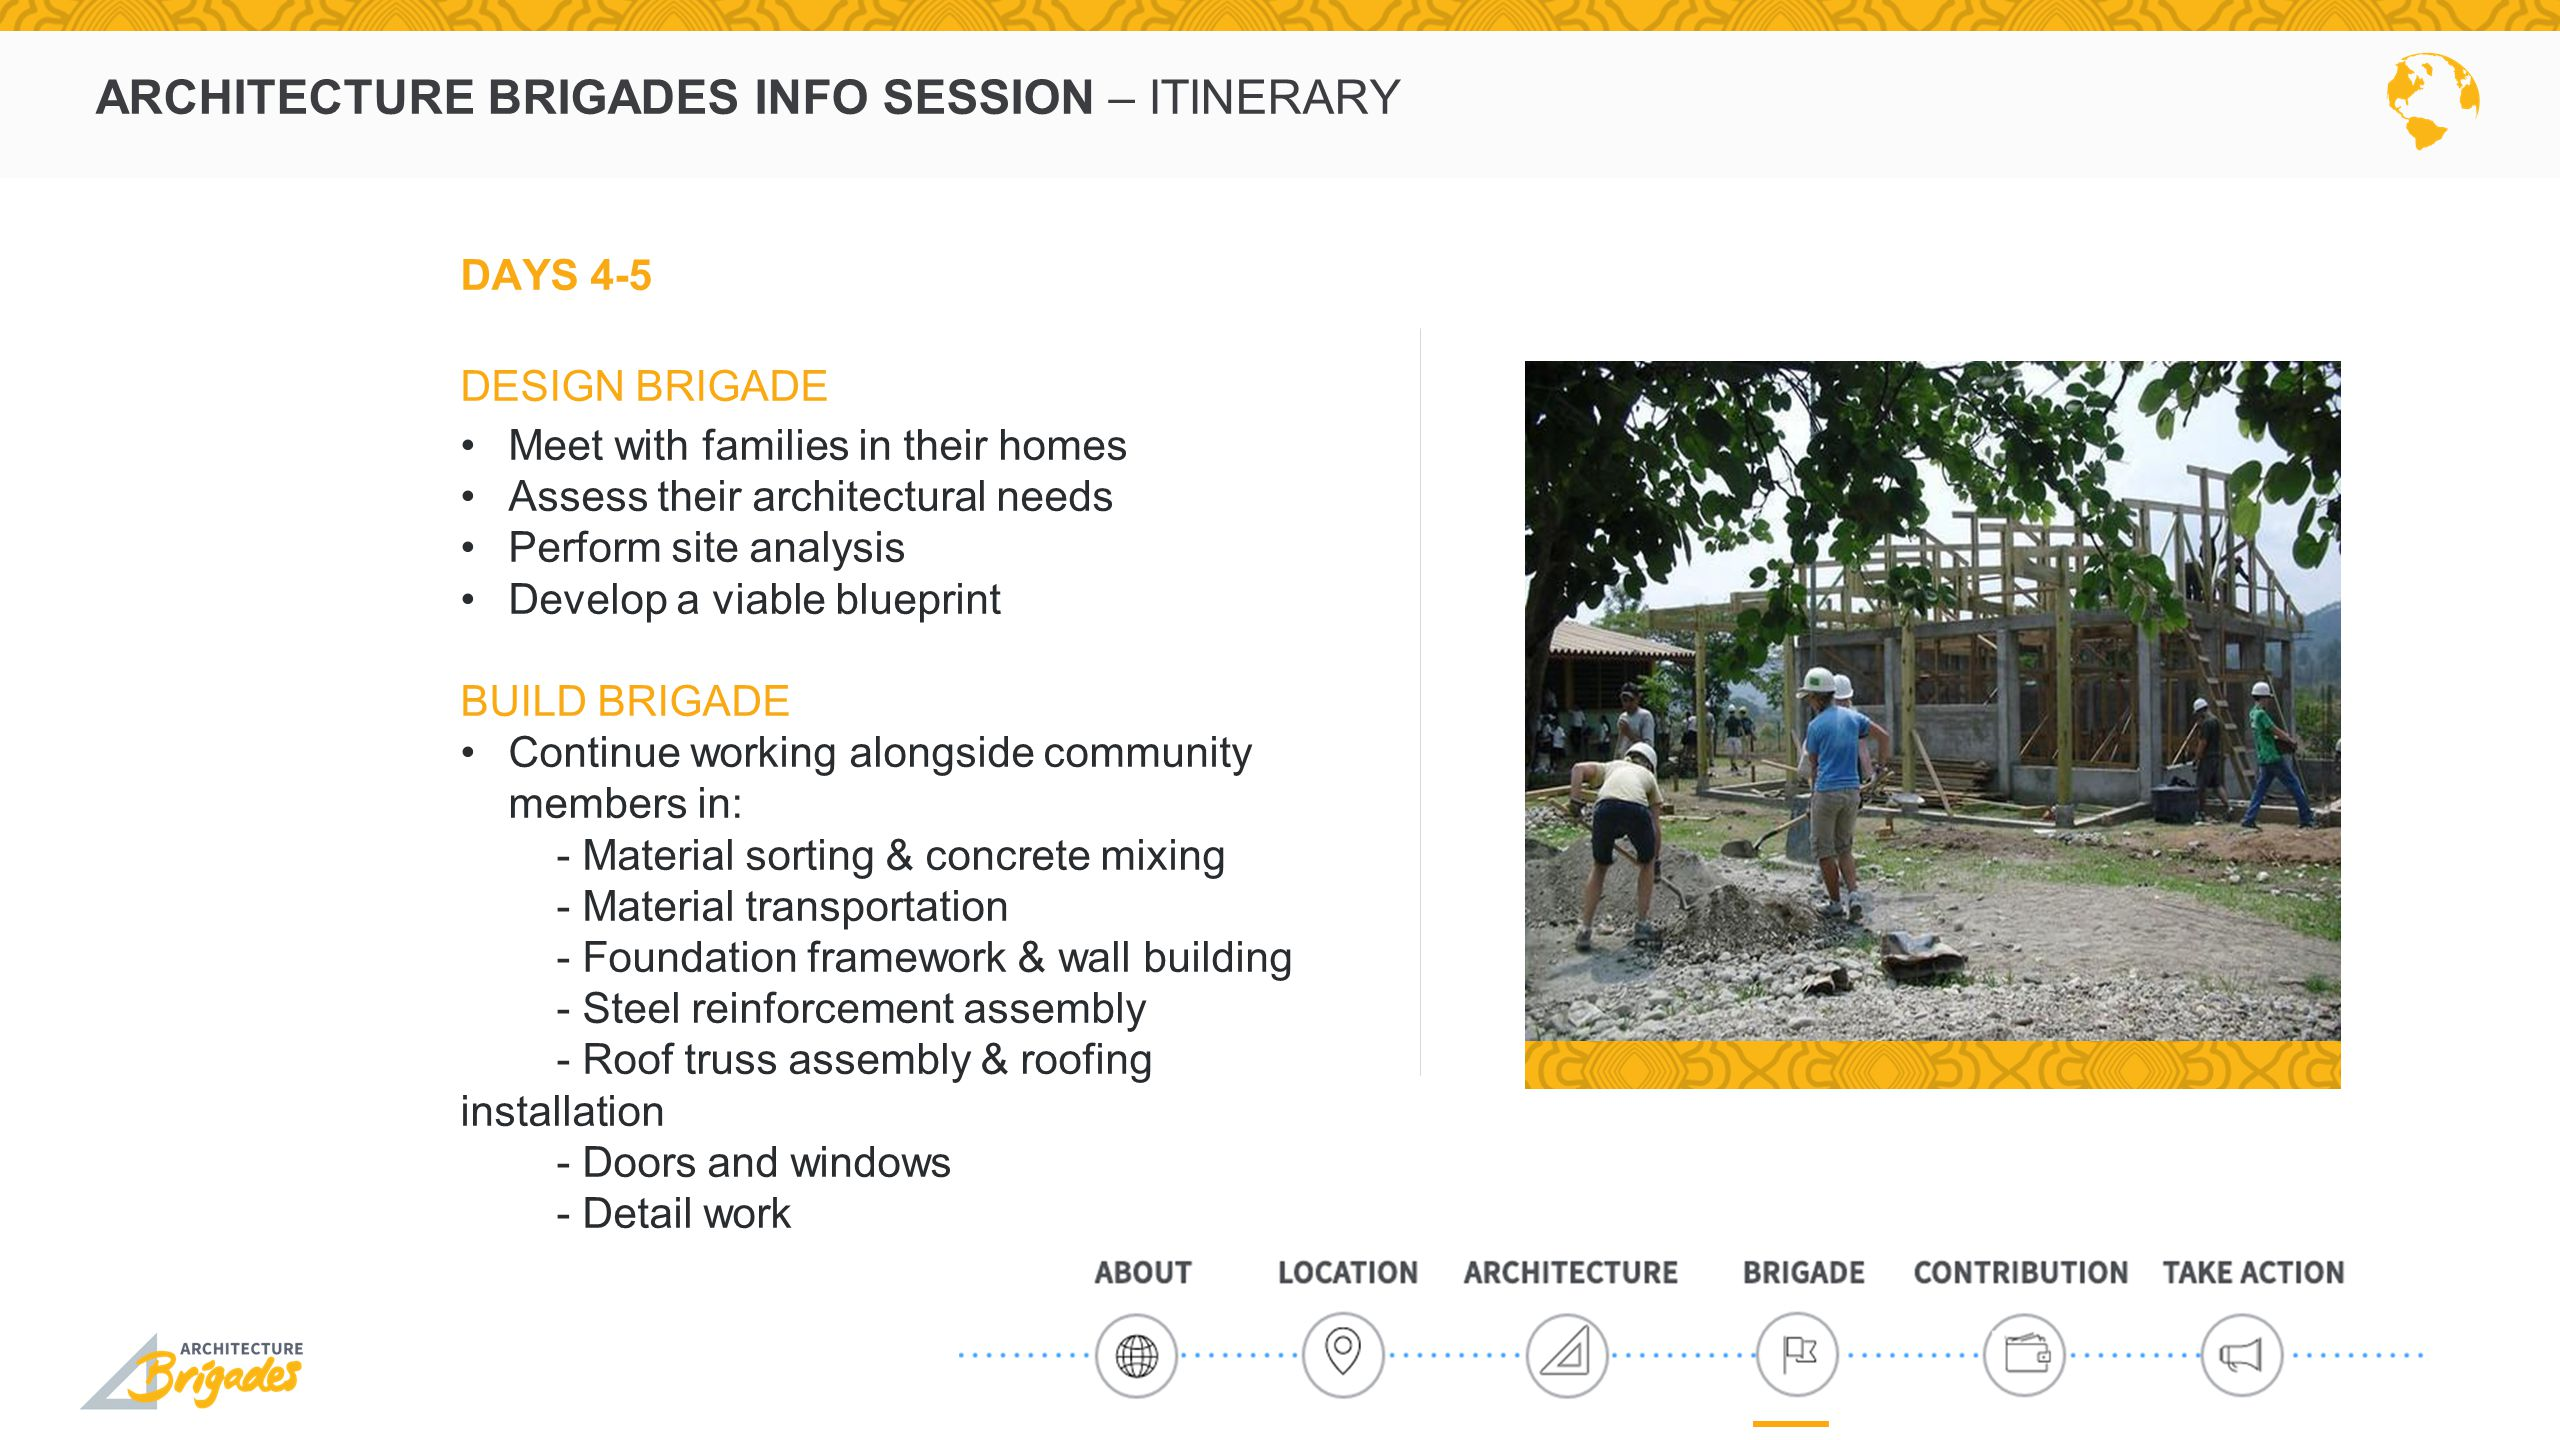 ARCHITECTURE BRIGADES INFO SESSION – ITINERARY DAYS 4-5 DESIGN BRIGADE Meet with families in their homes Assess their architectural needs Perform site analysis Develop a viable blueprint BUILD BRIGADE Continue working alongside community members in: - Material sorting & concrete mixing - Material transportation - Foundation framework & wall building - Steel reinforcement assembly - Roof truss assembly & roofing installation - Doors and windows - Detail work